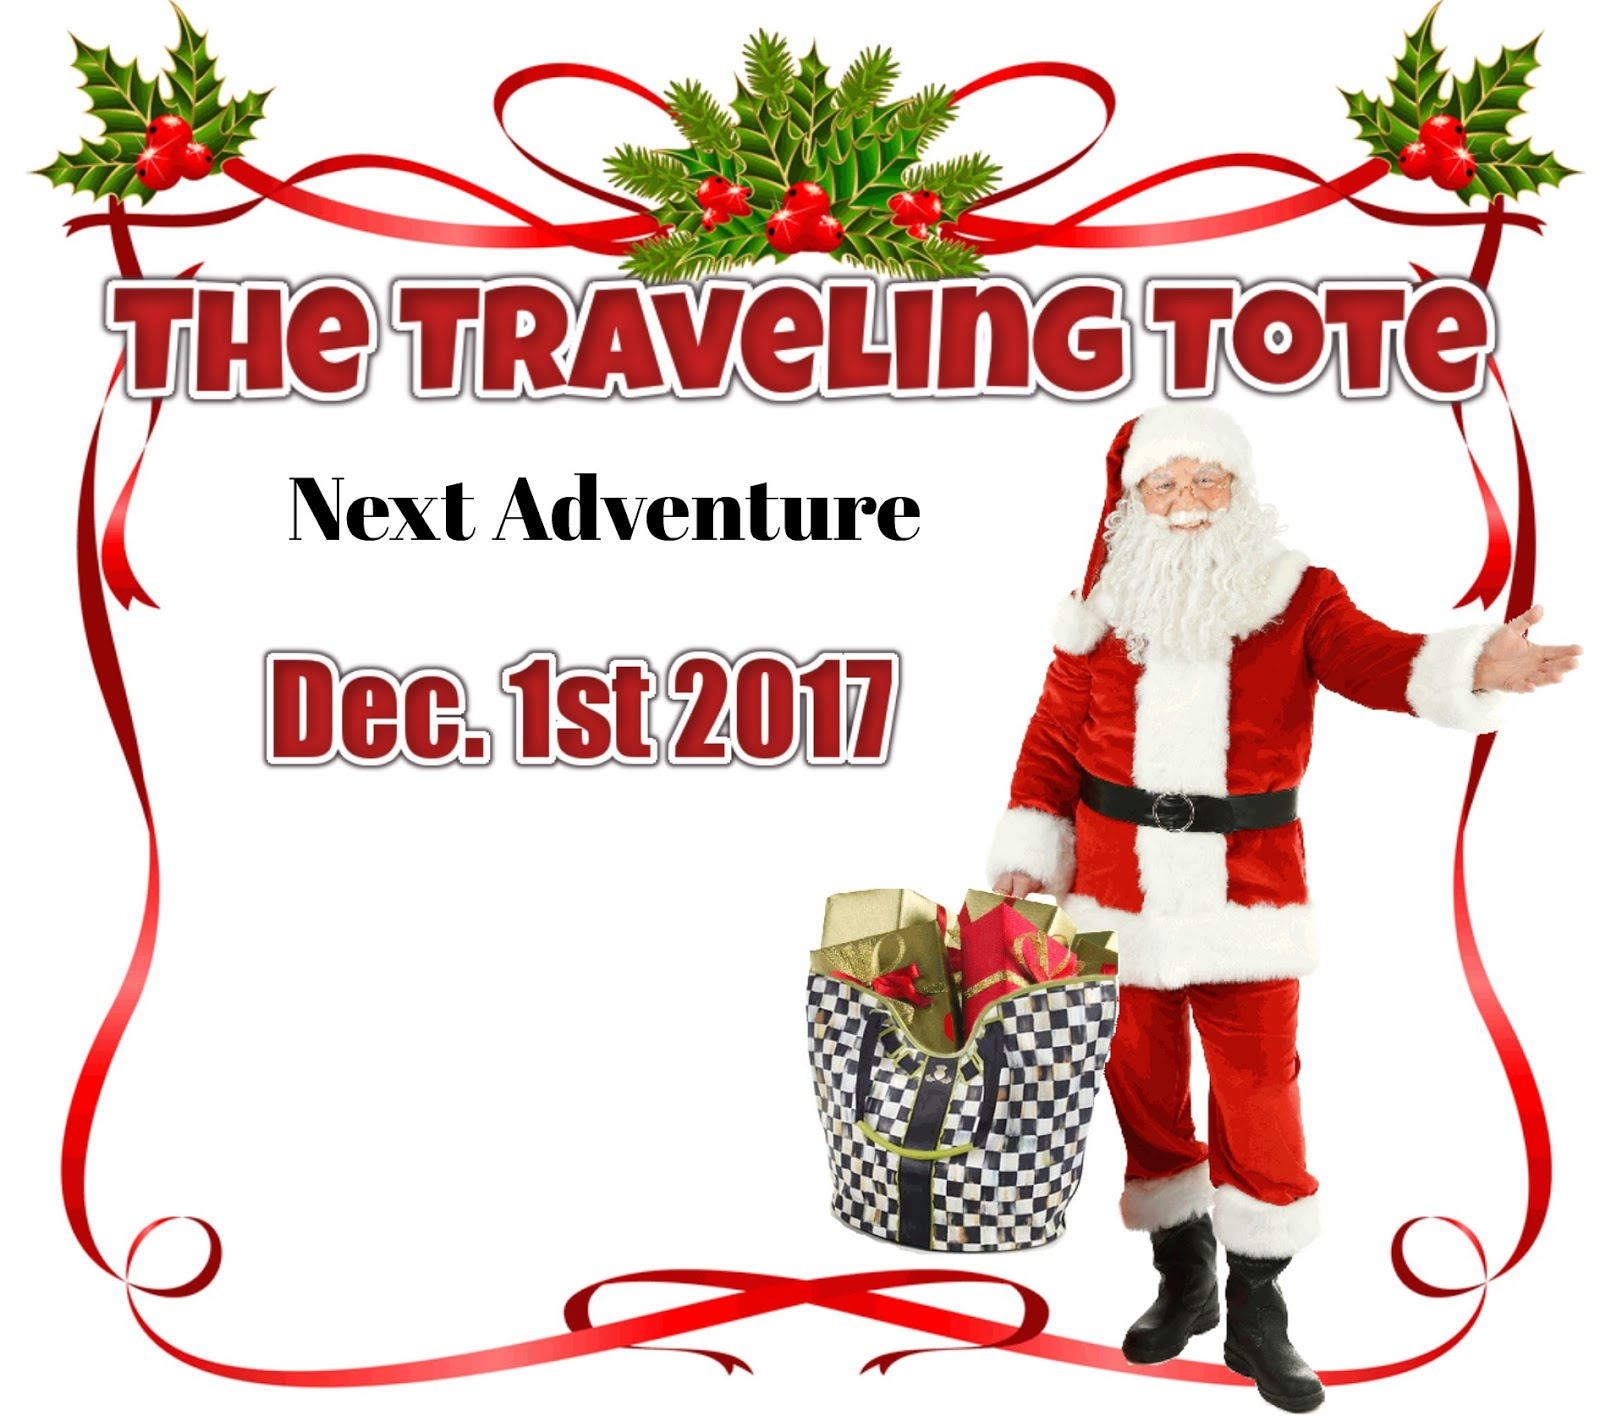 Look for Tales of the Traveling Tote #13